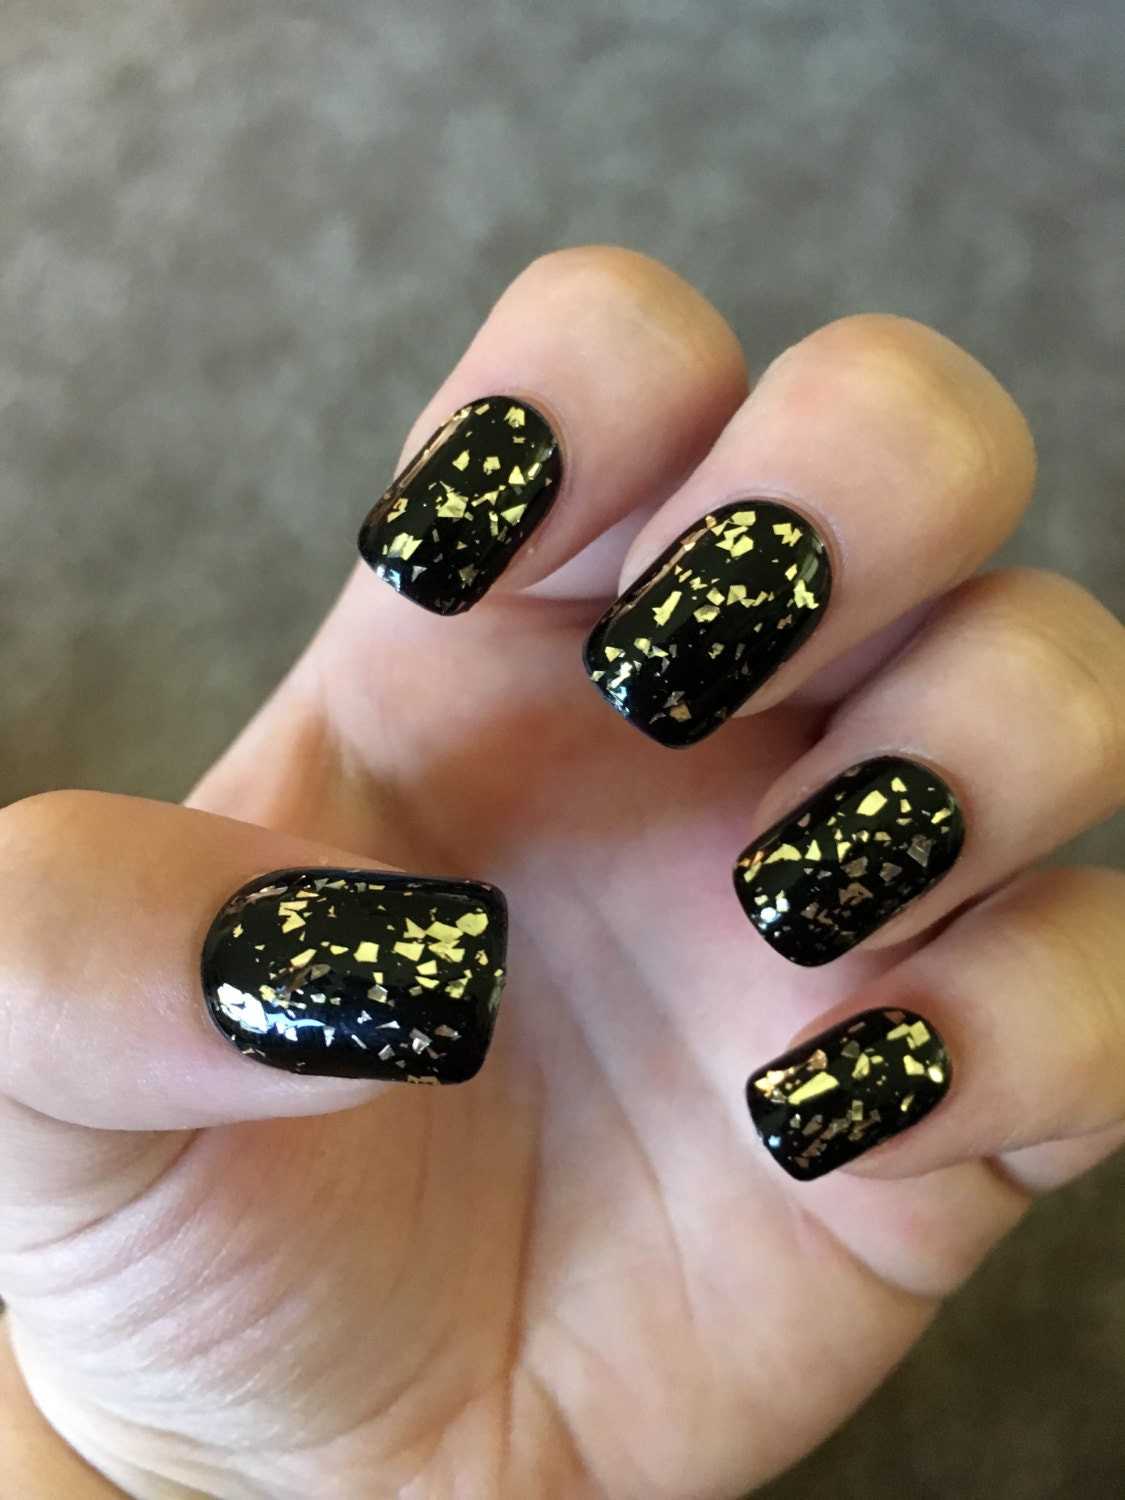 Black with Gold Flakes Fake Nails | Press On | Glue On Nails ...